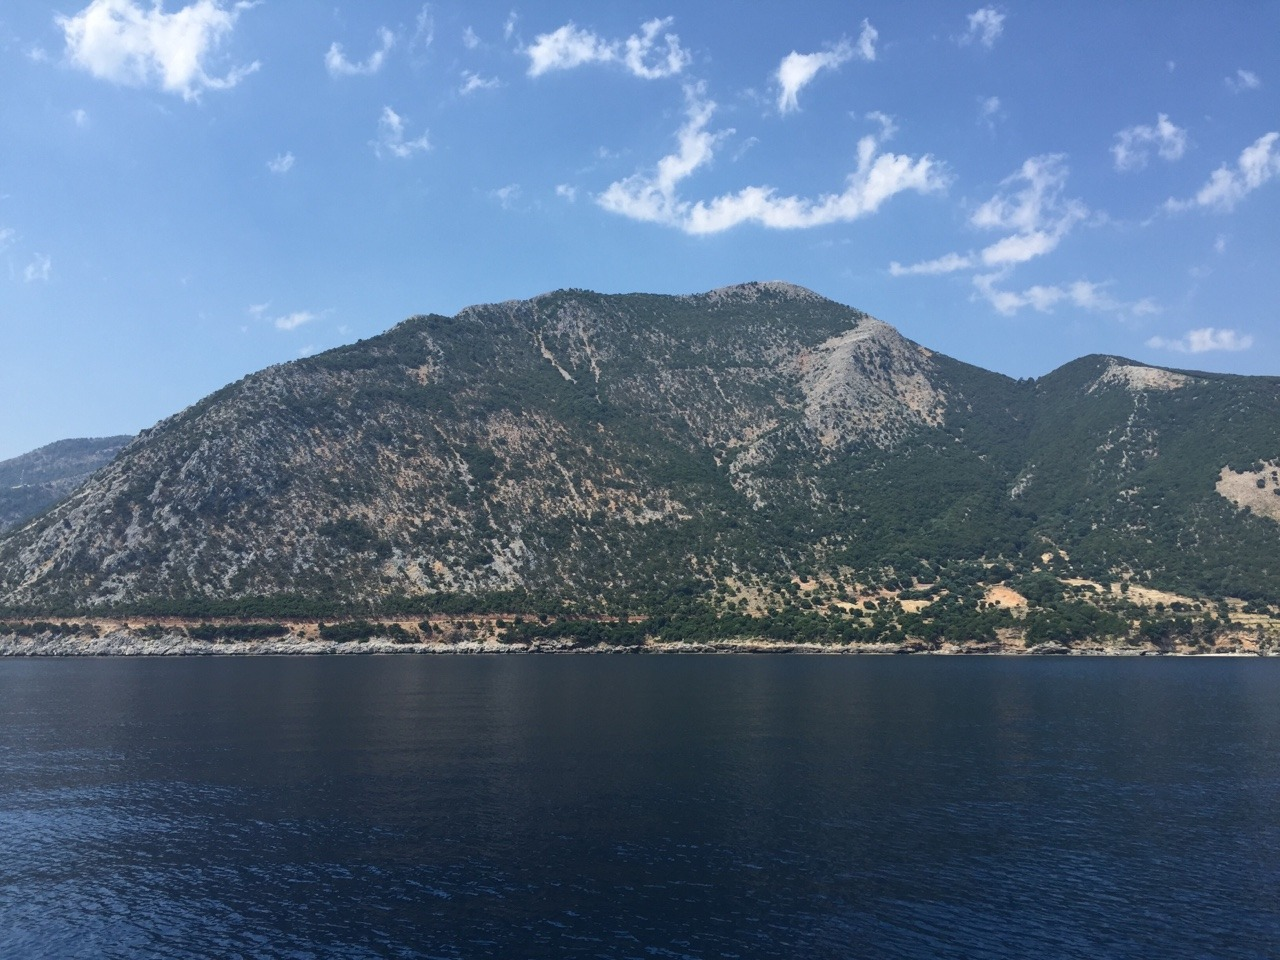 East face of the mountain in Poros.